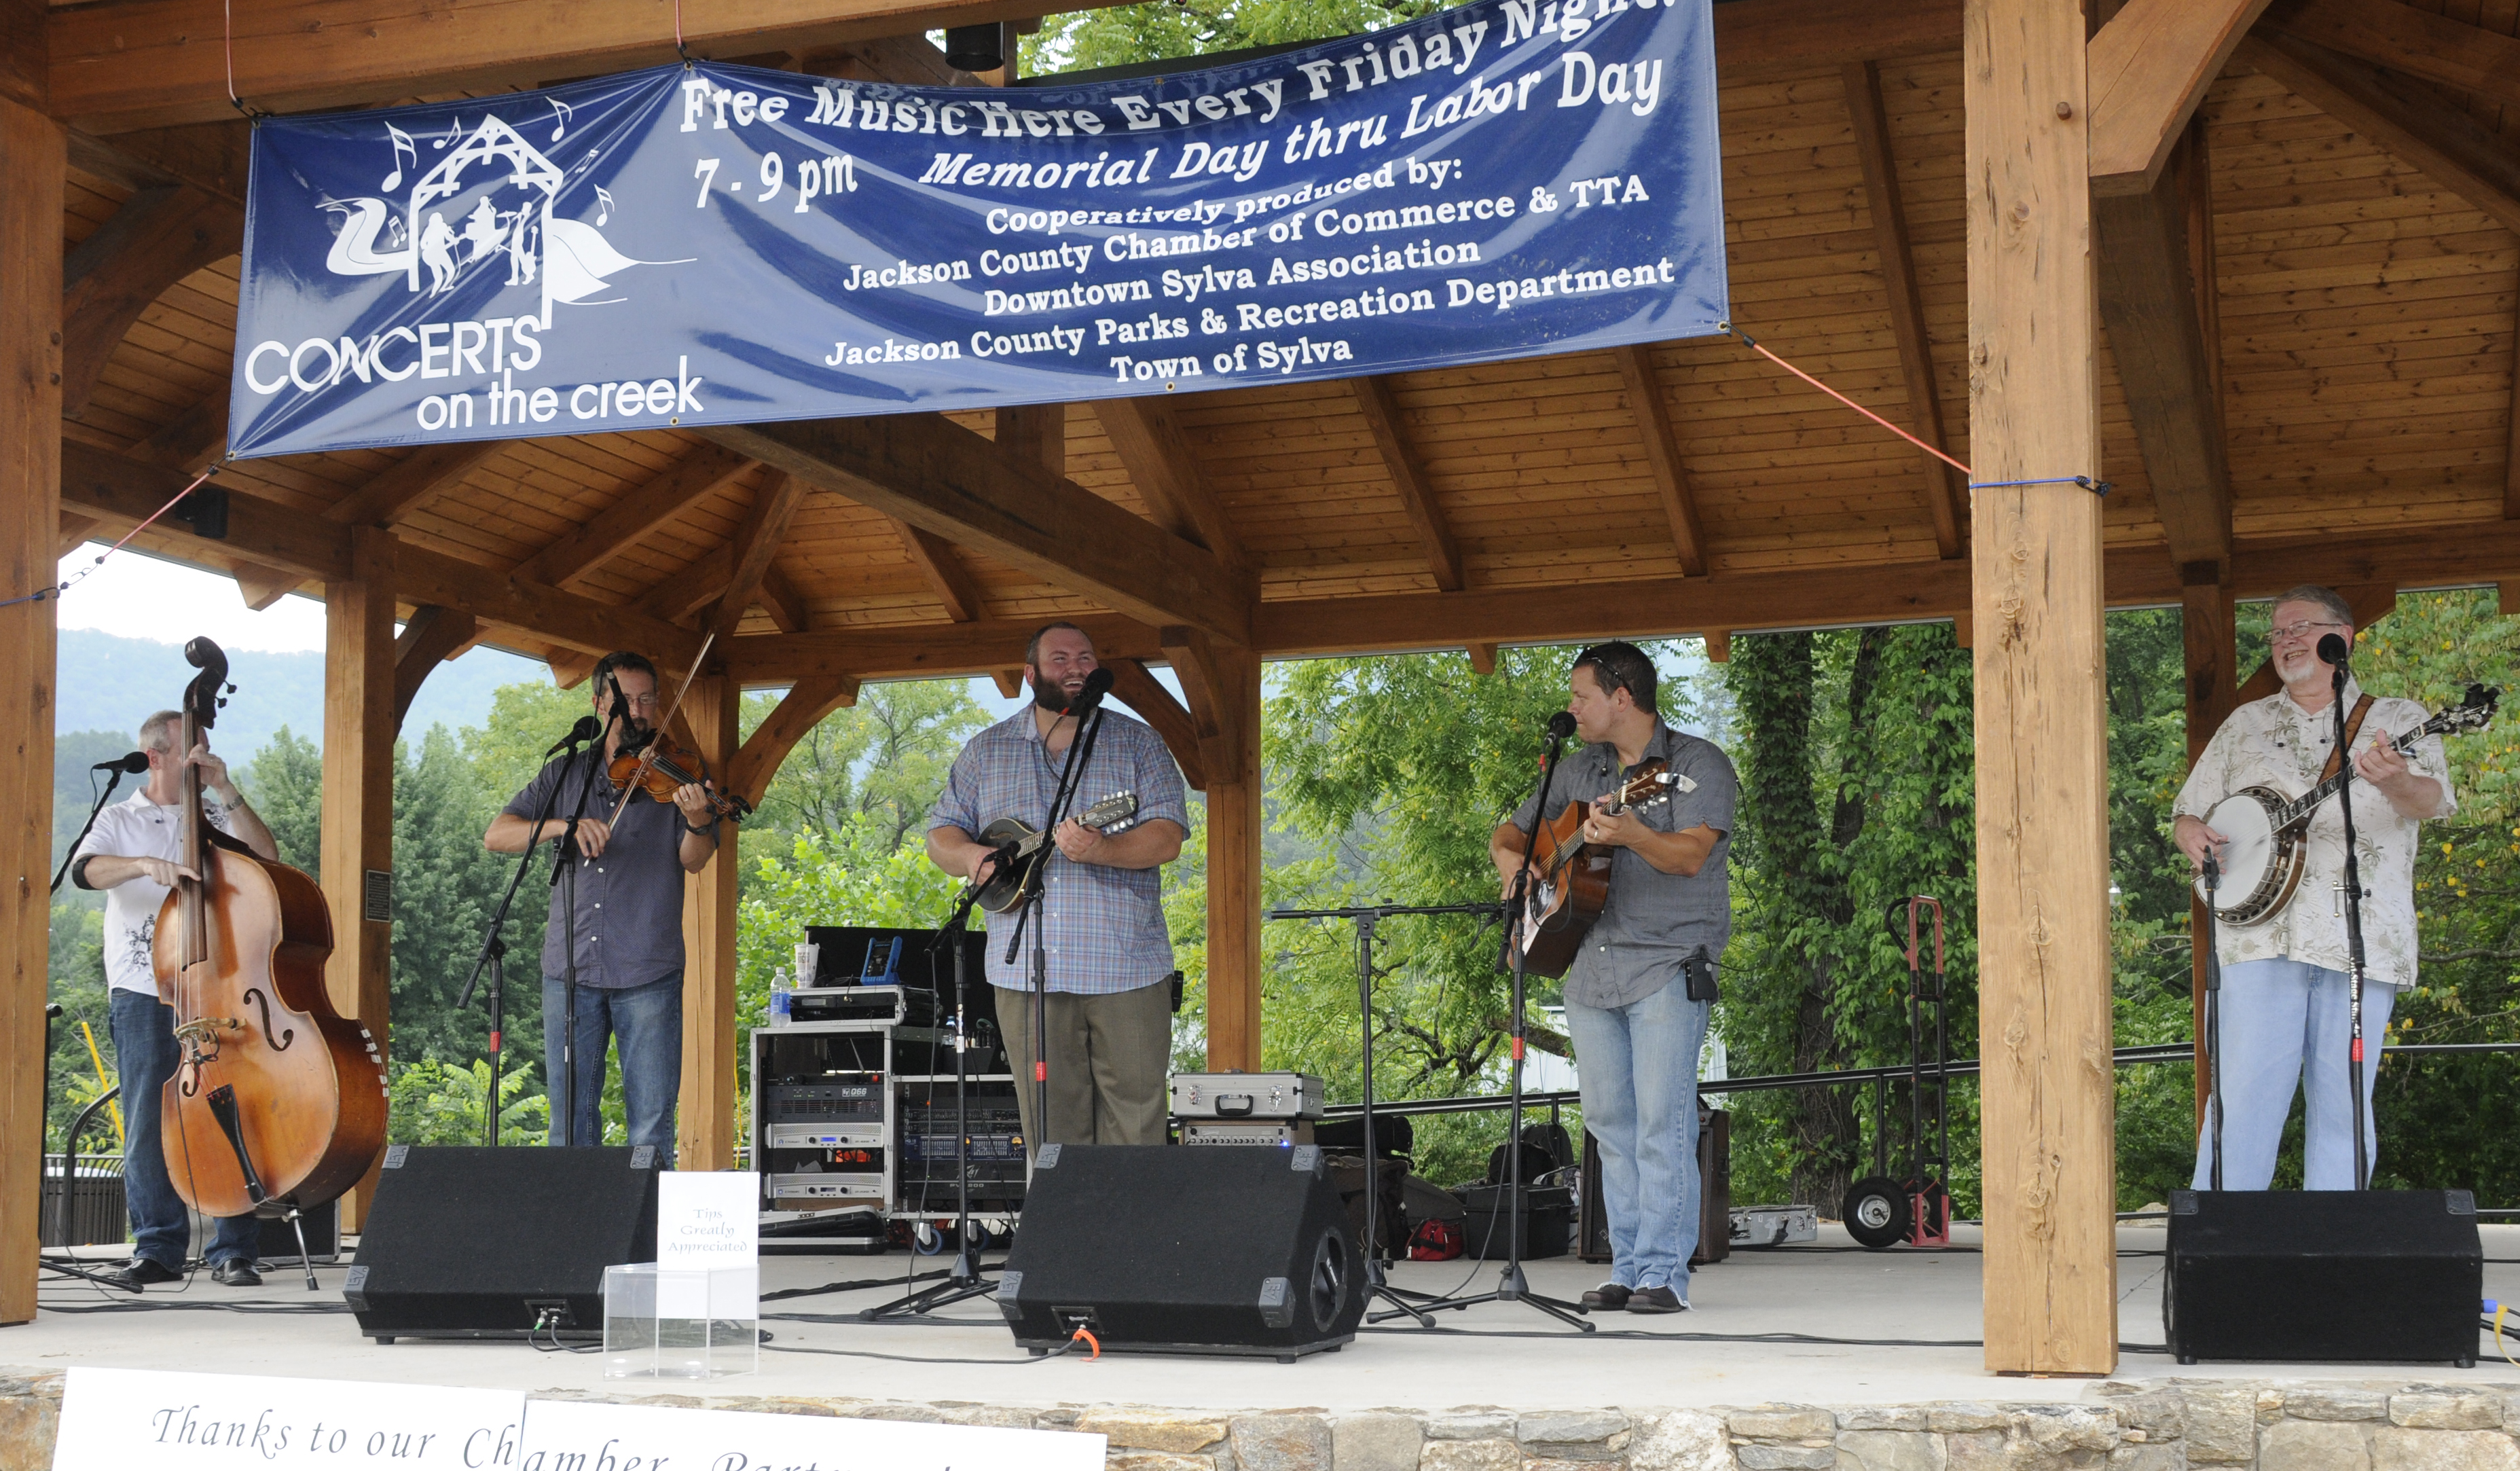 live music at concerts on the creek in jackson county